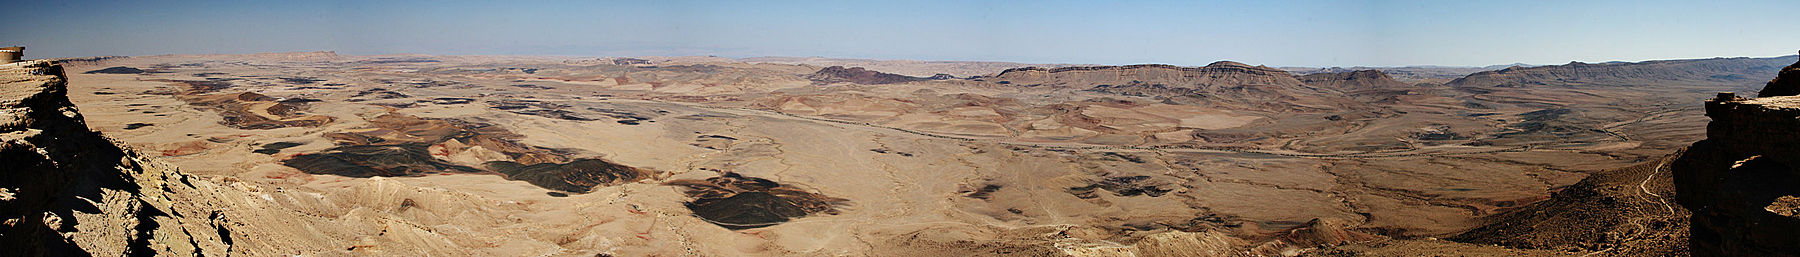 Ramon Crater WidePanorama banner.jpg